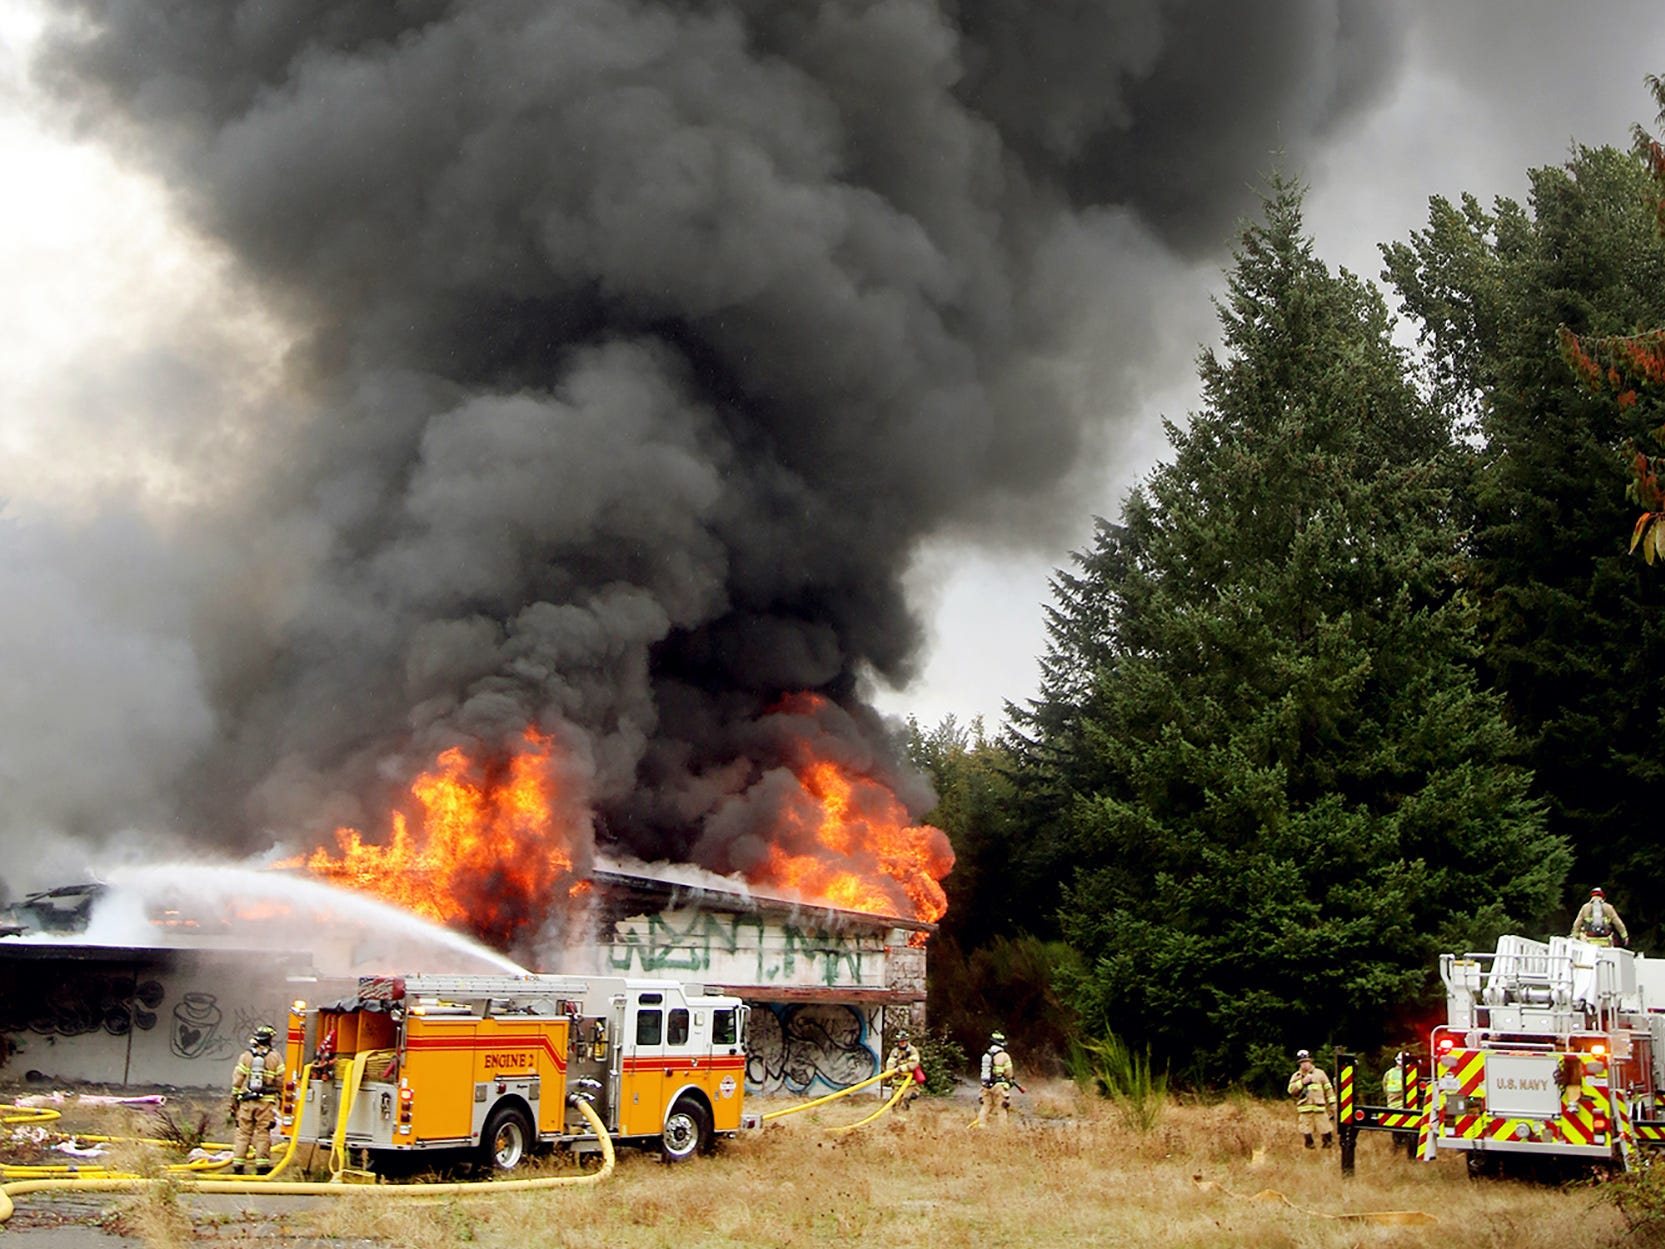 The old Natacha's and Perl's venue in West Bremerton erupts in flames on Monday October, 1, 2018. The building was vacant at the time, and used by transients..